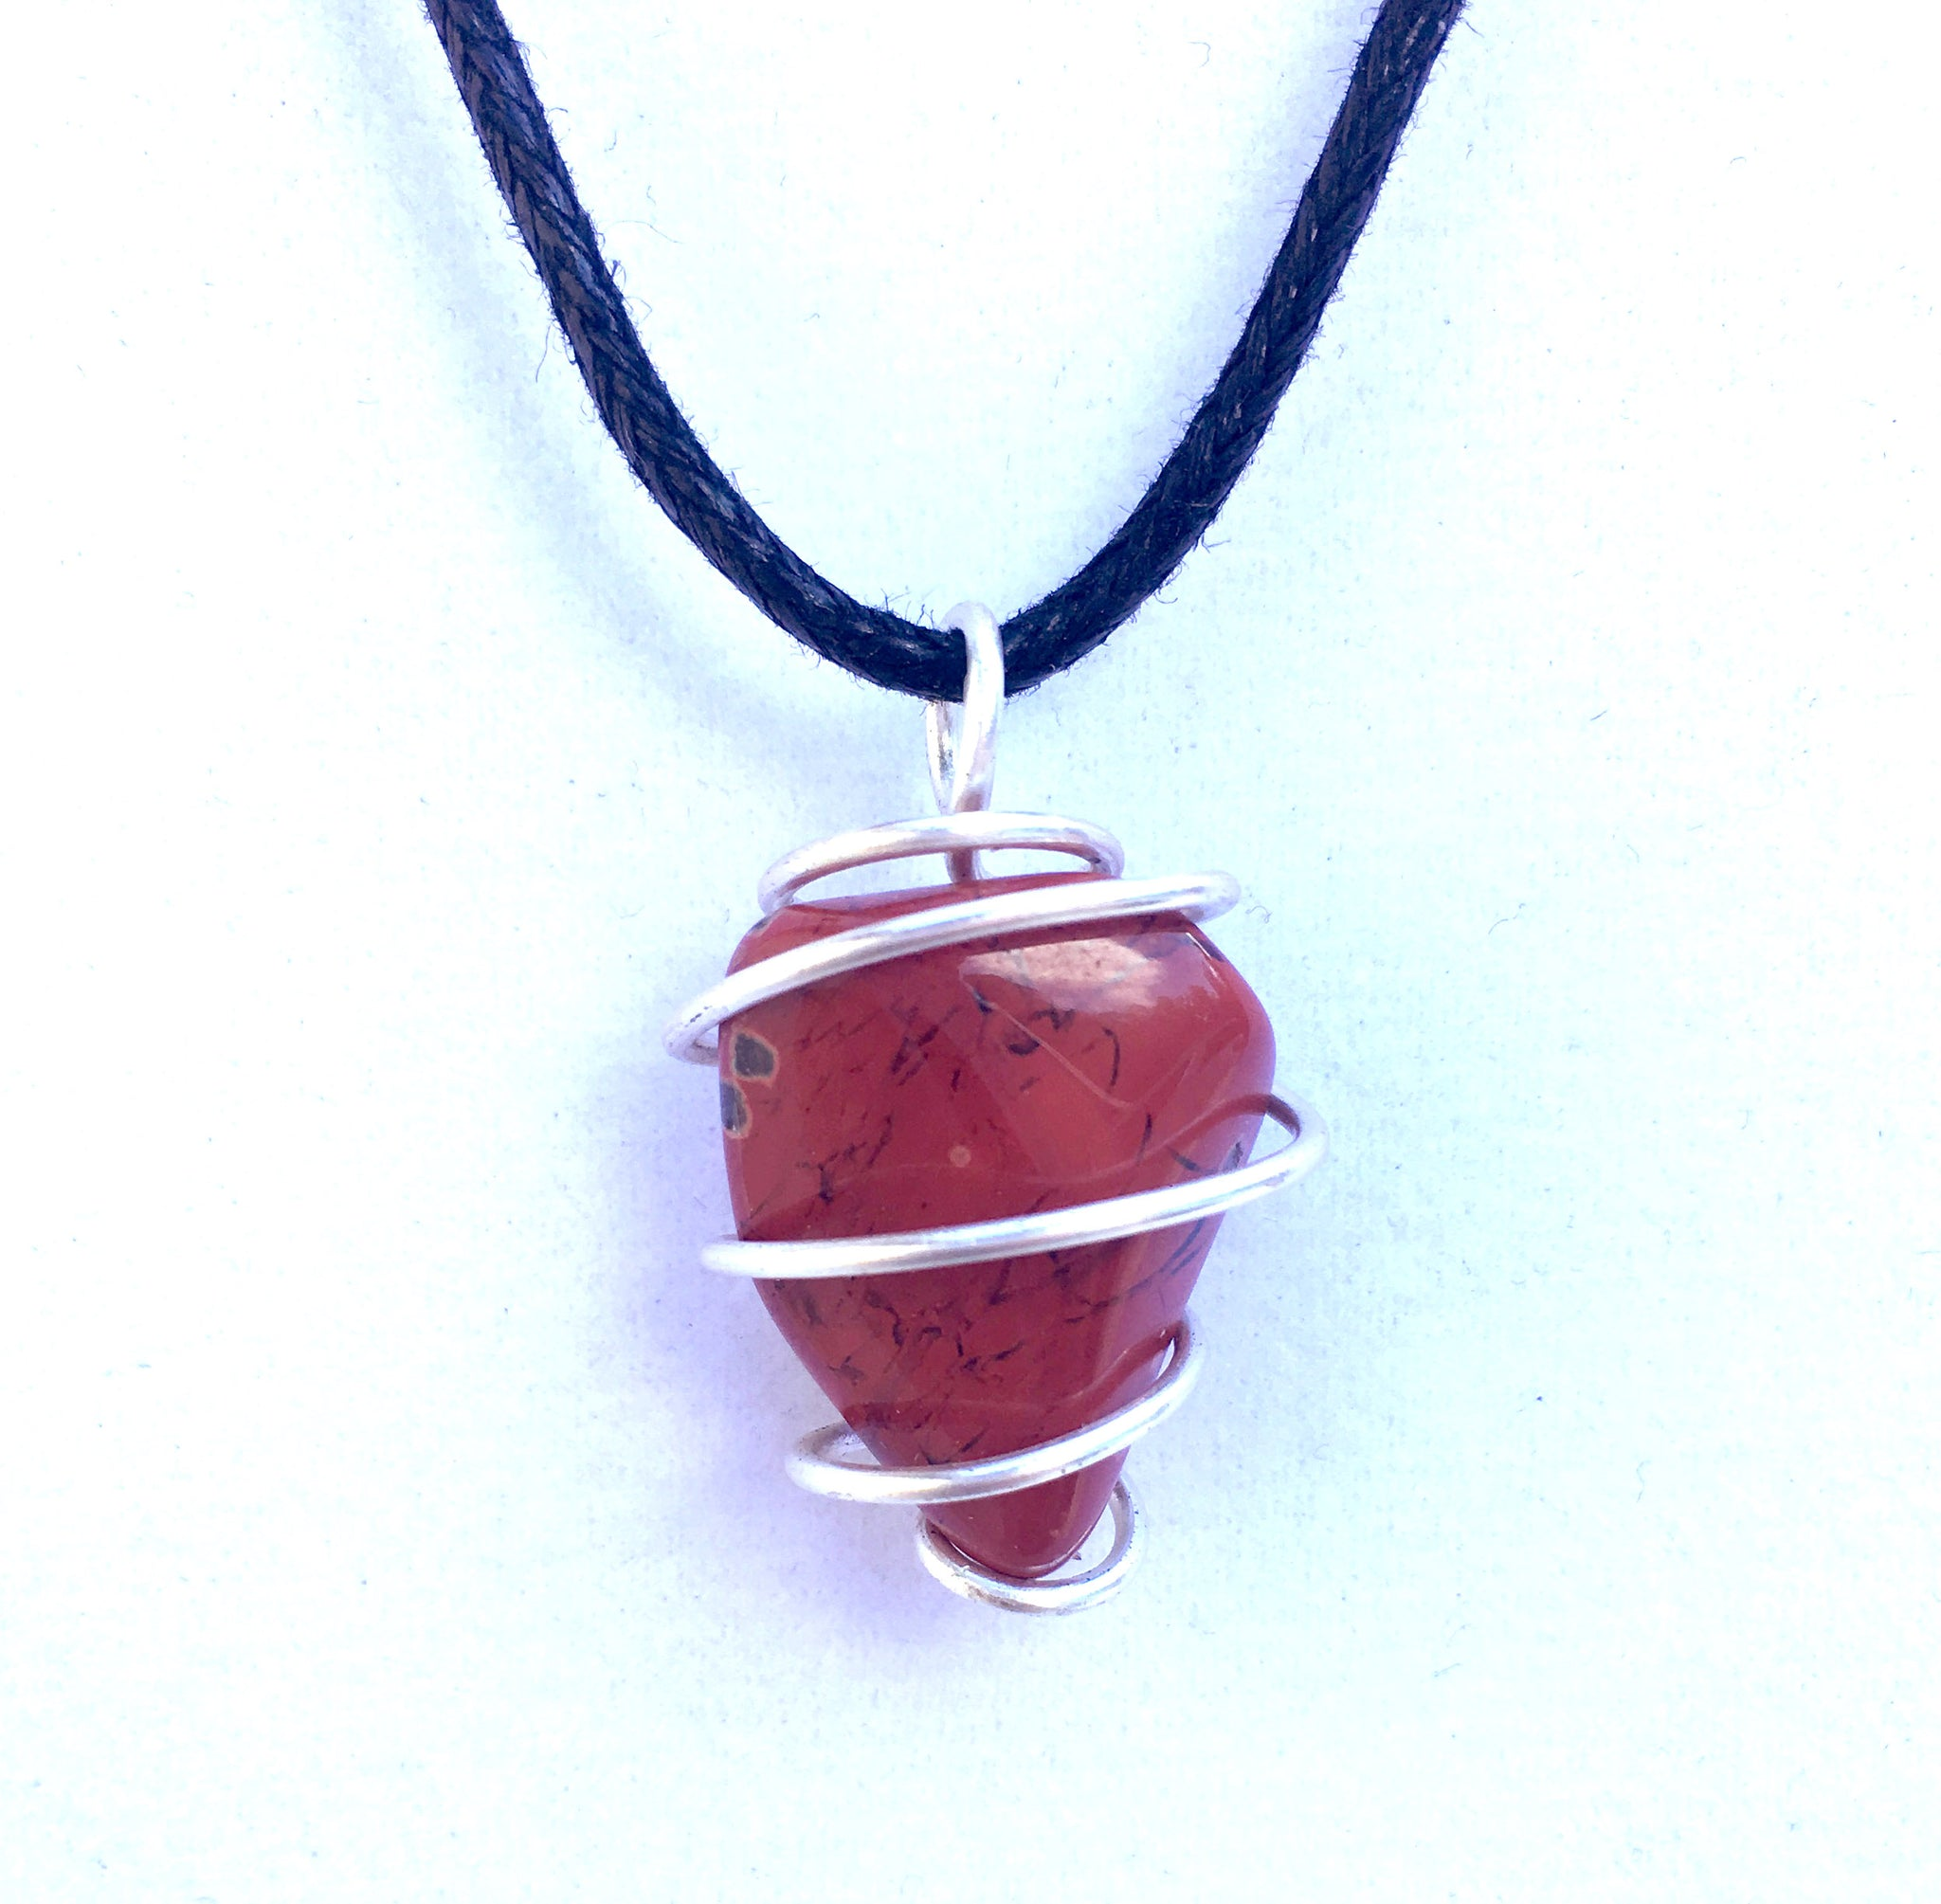 Tumbled Red Jasper Spiral Cage Pendant